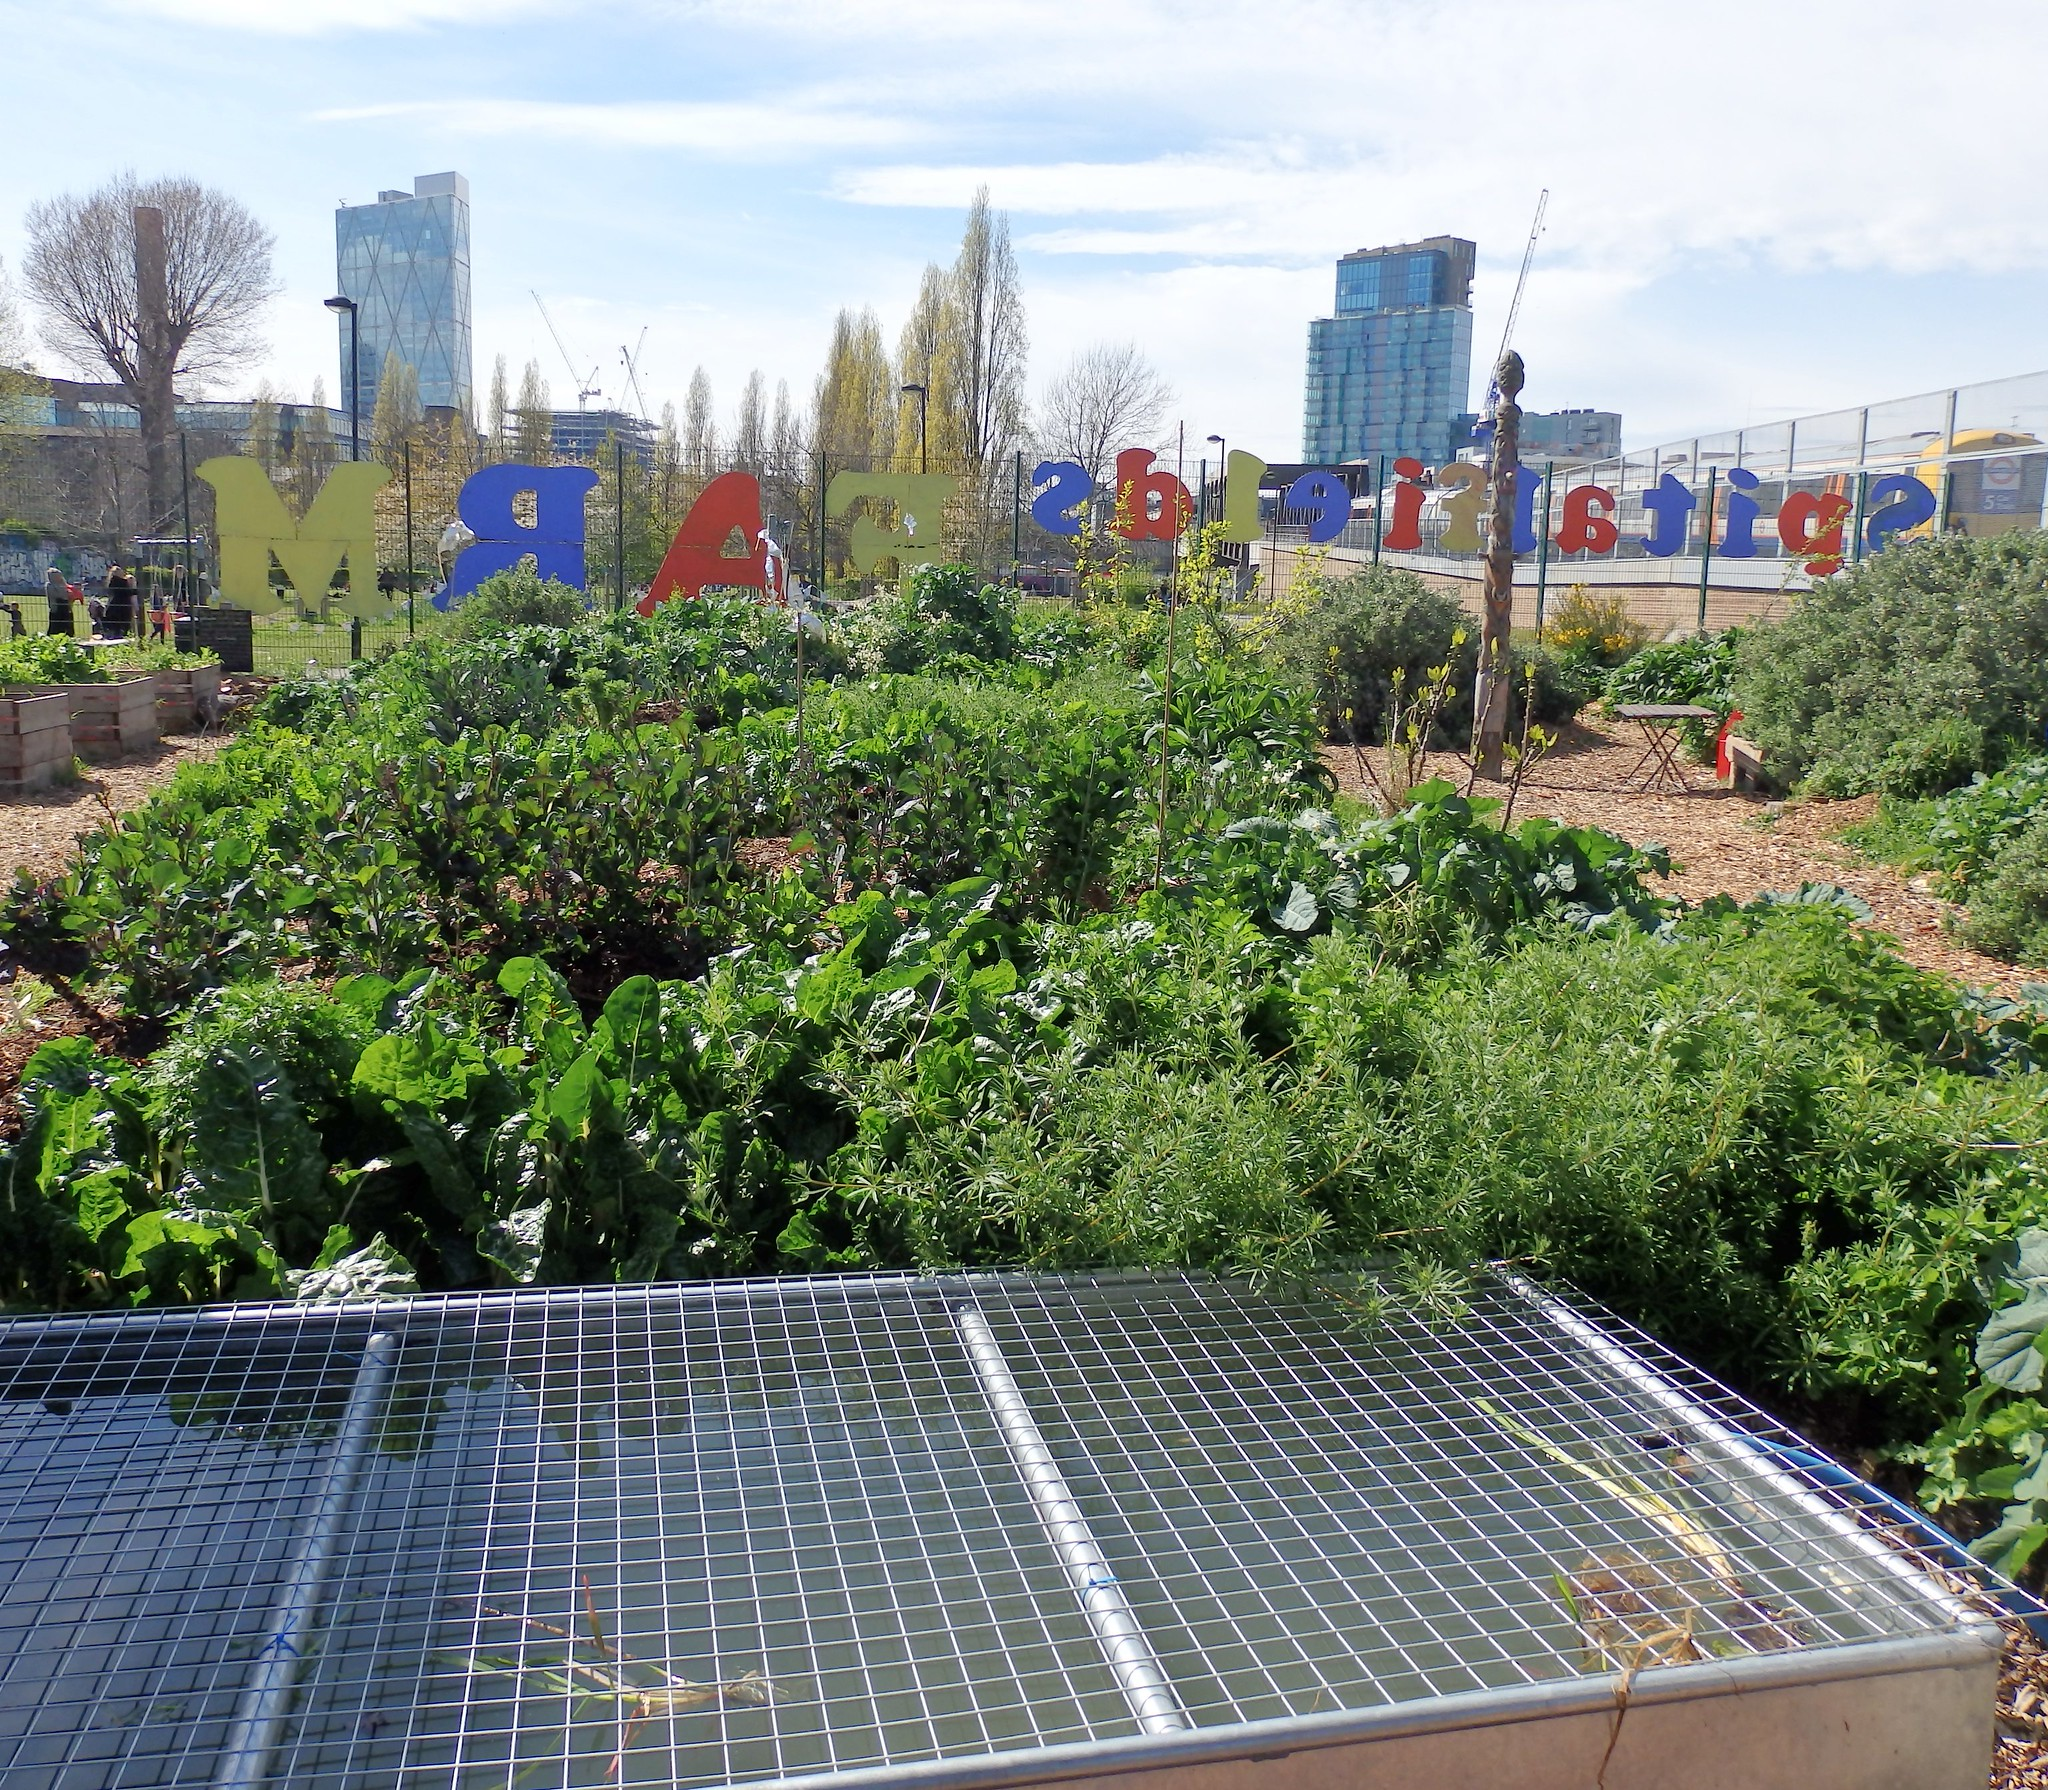 Colour photograph looking out from the farm, with growing vegetables in the foreground, through a fence carrying the farm's name in coloured lettering, to the city beyond.